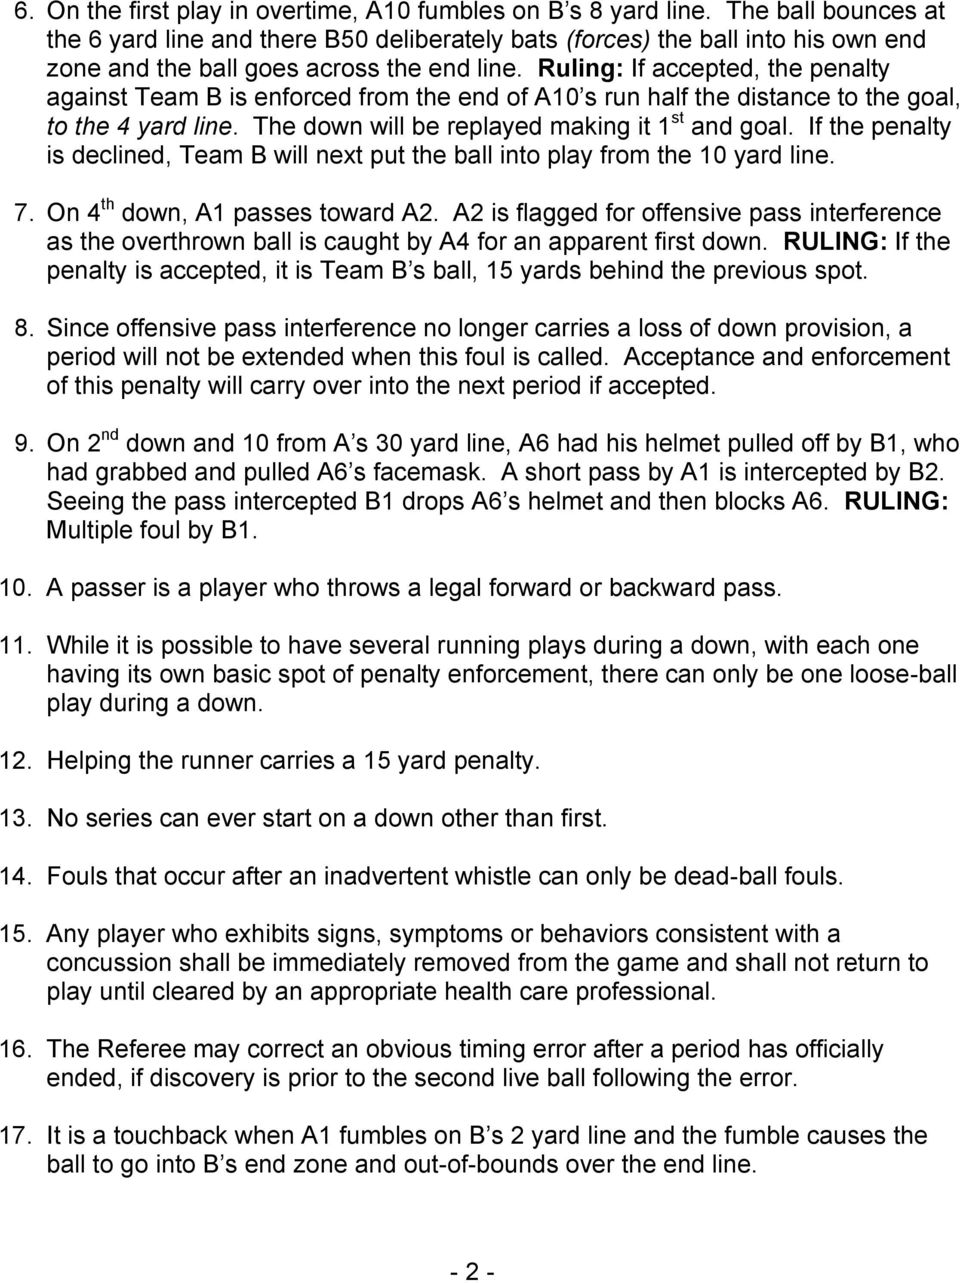 Ruling: If accepted, the penalty against Team B is enforced from the end of A10 s run half the distance to the goal, to the 4 yard line. The down will be replayed making it 1 st and goal.